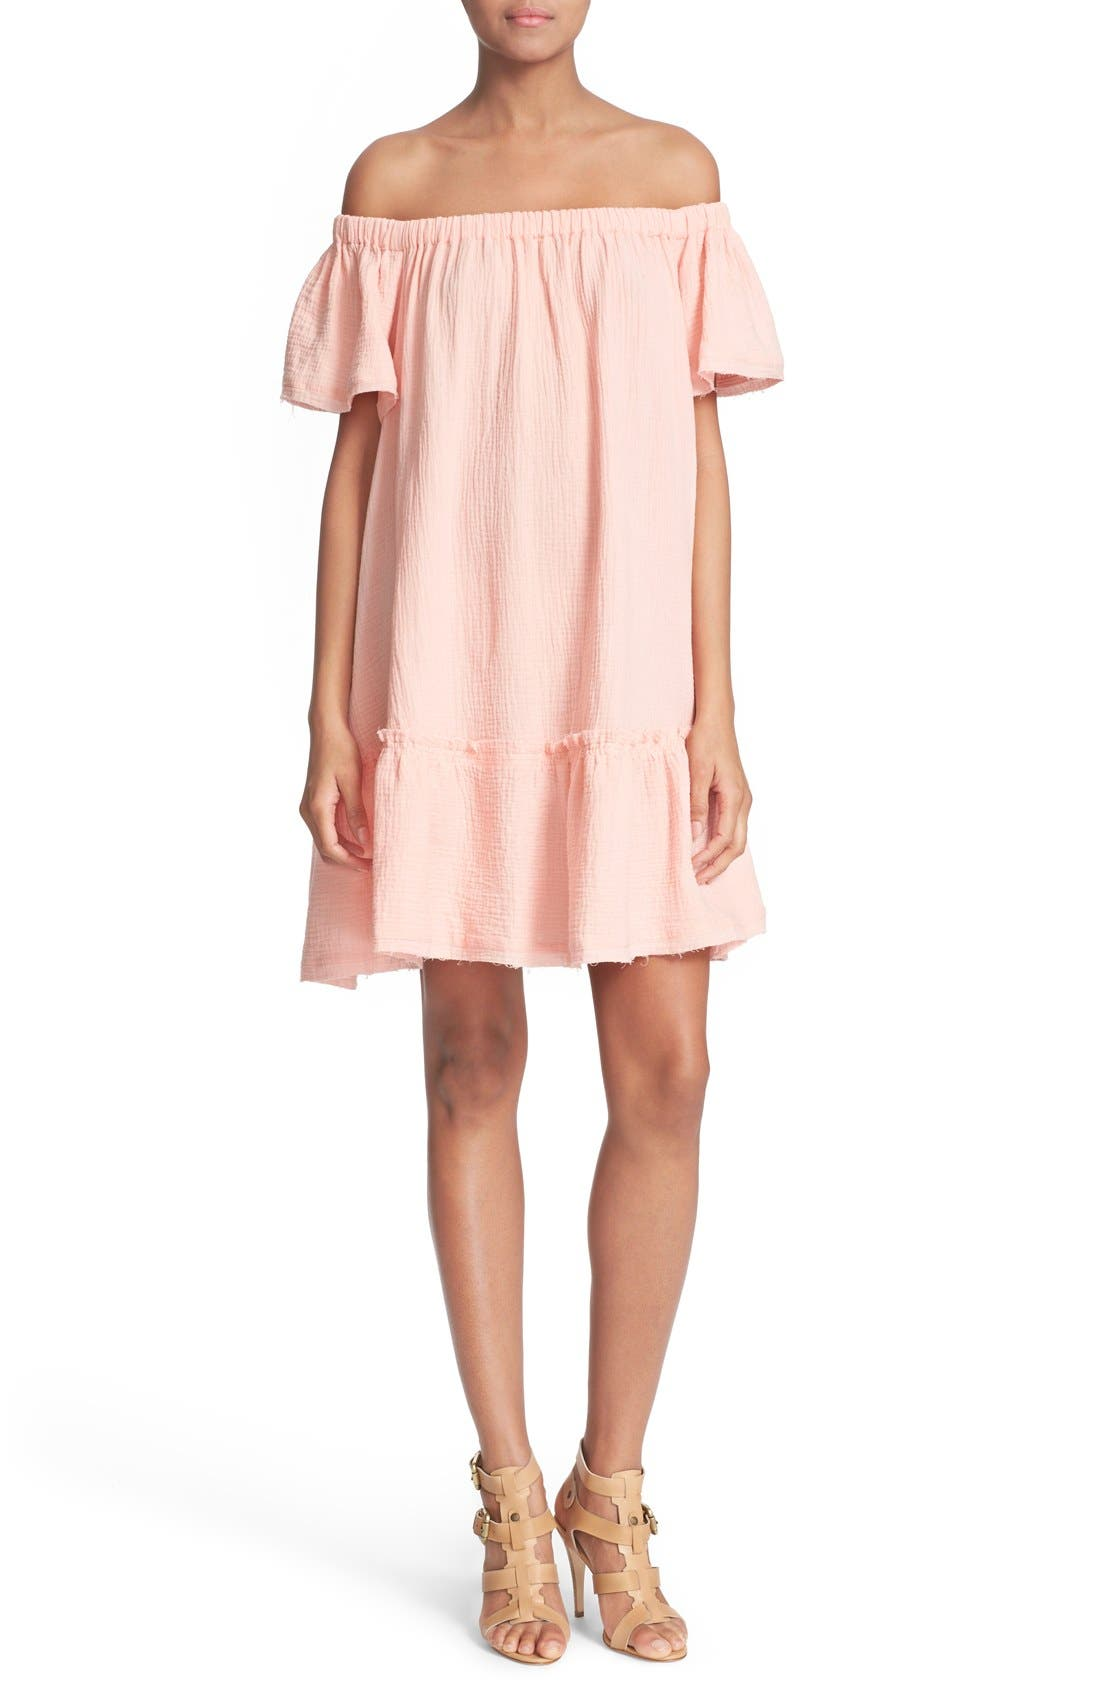 Alternate Image 1 Selected - Rebecca Taylor Off the Shoulder Cotton Swing Dress